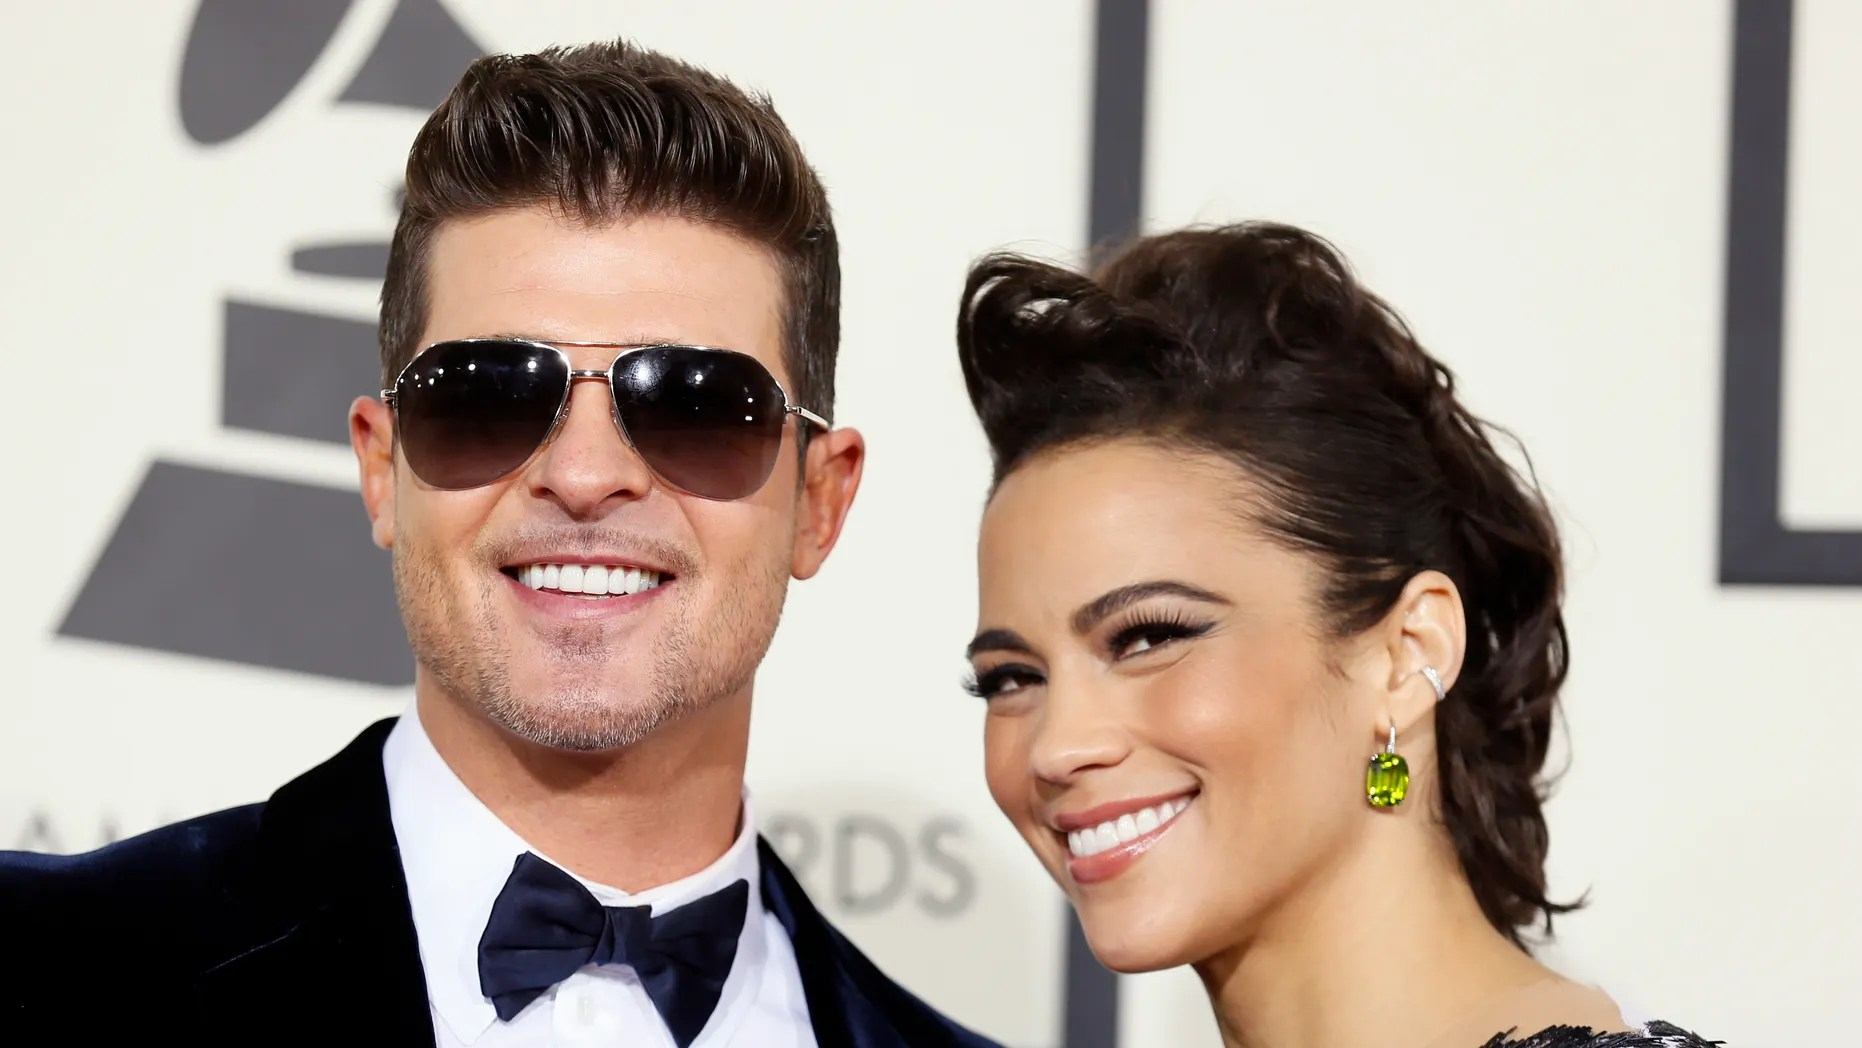 Robin Thicke ordered to stay away from ex-wife | Fox News